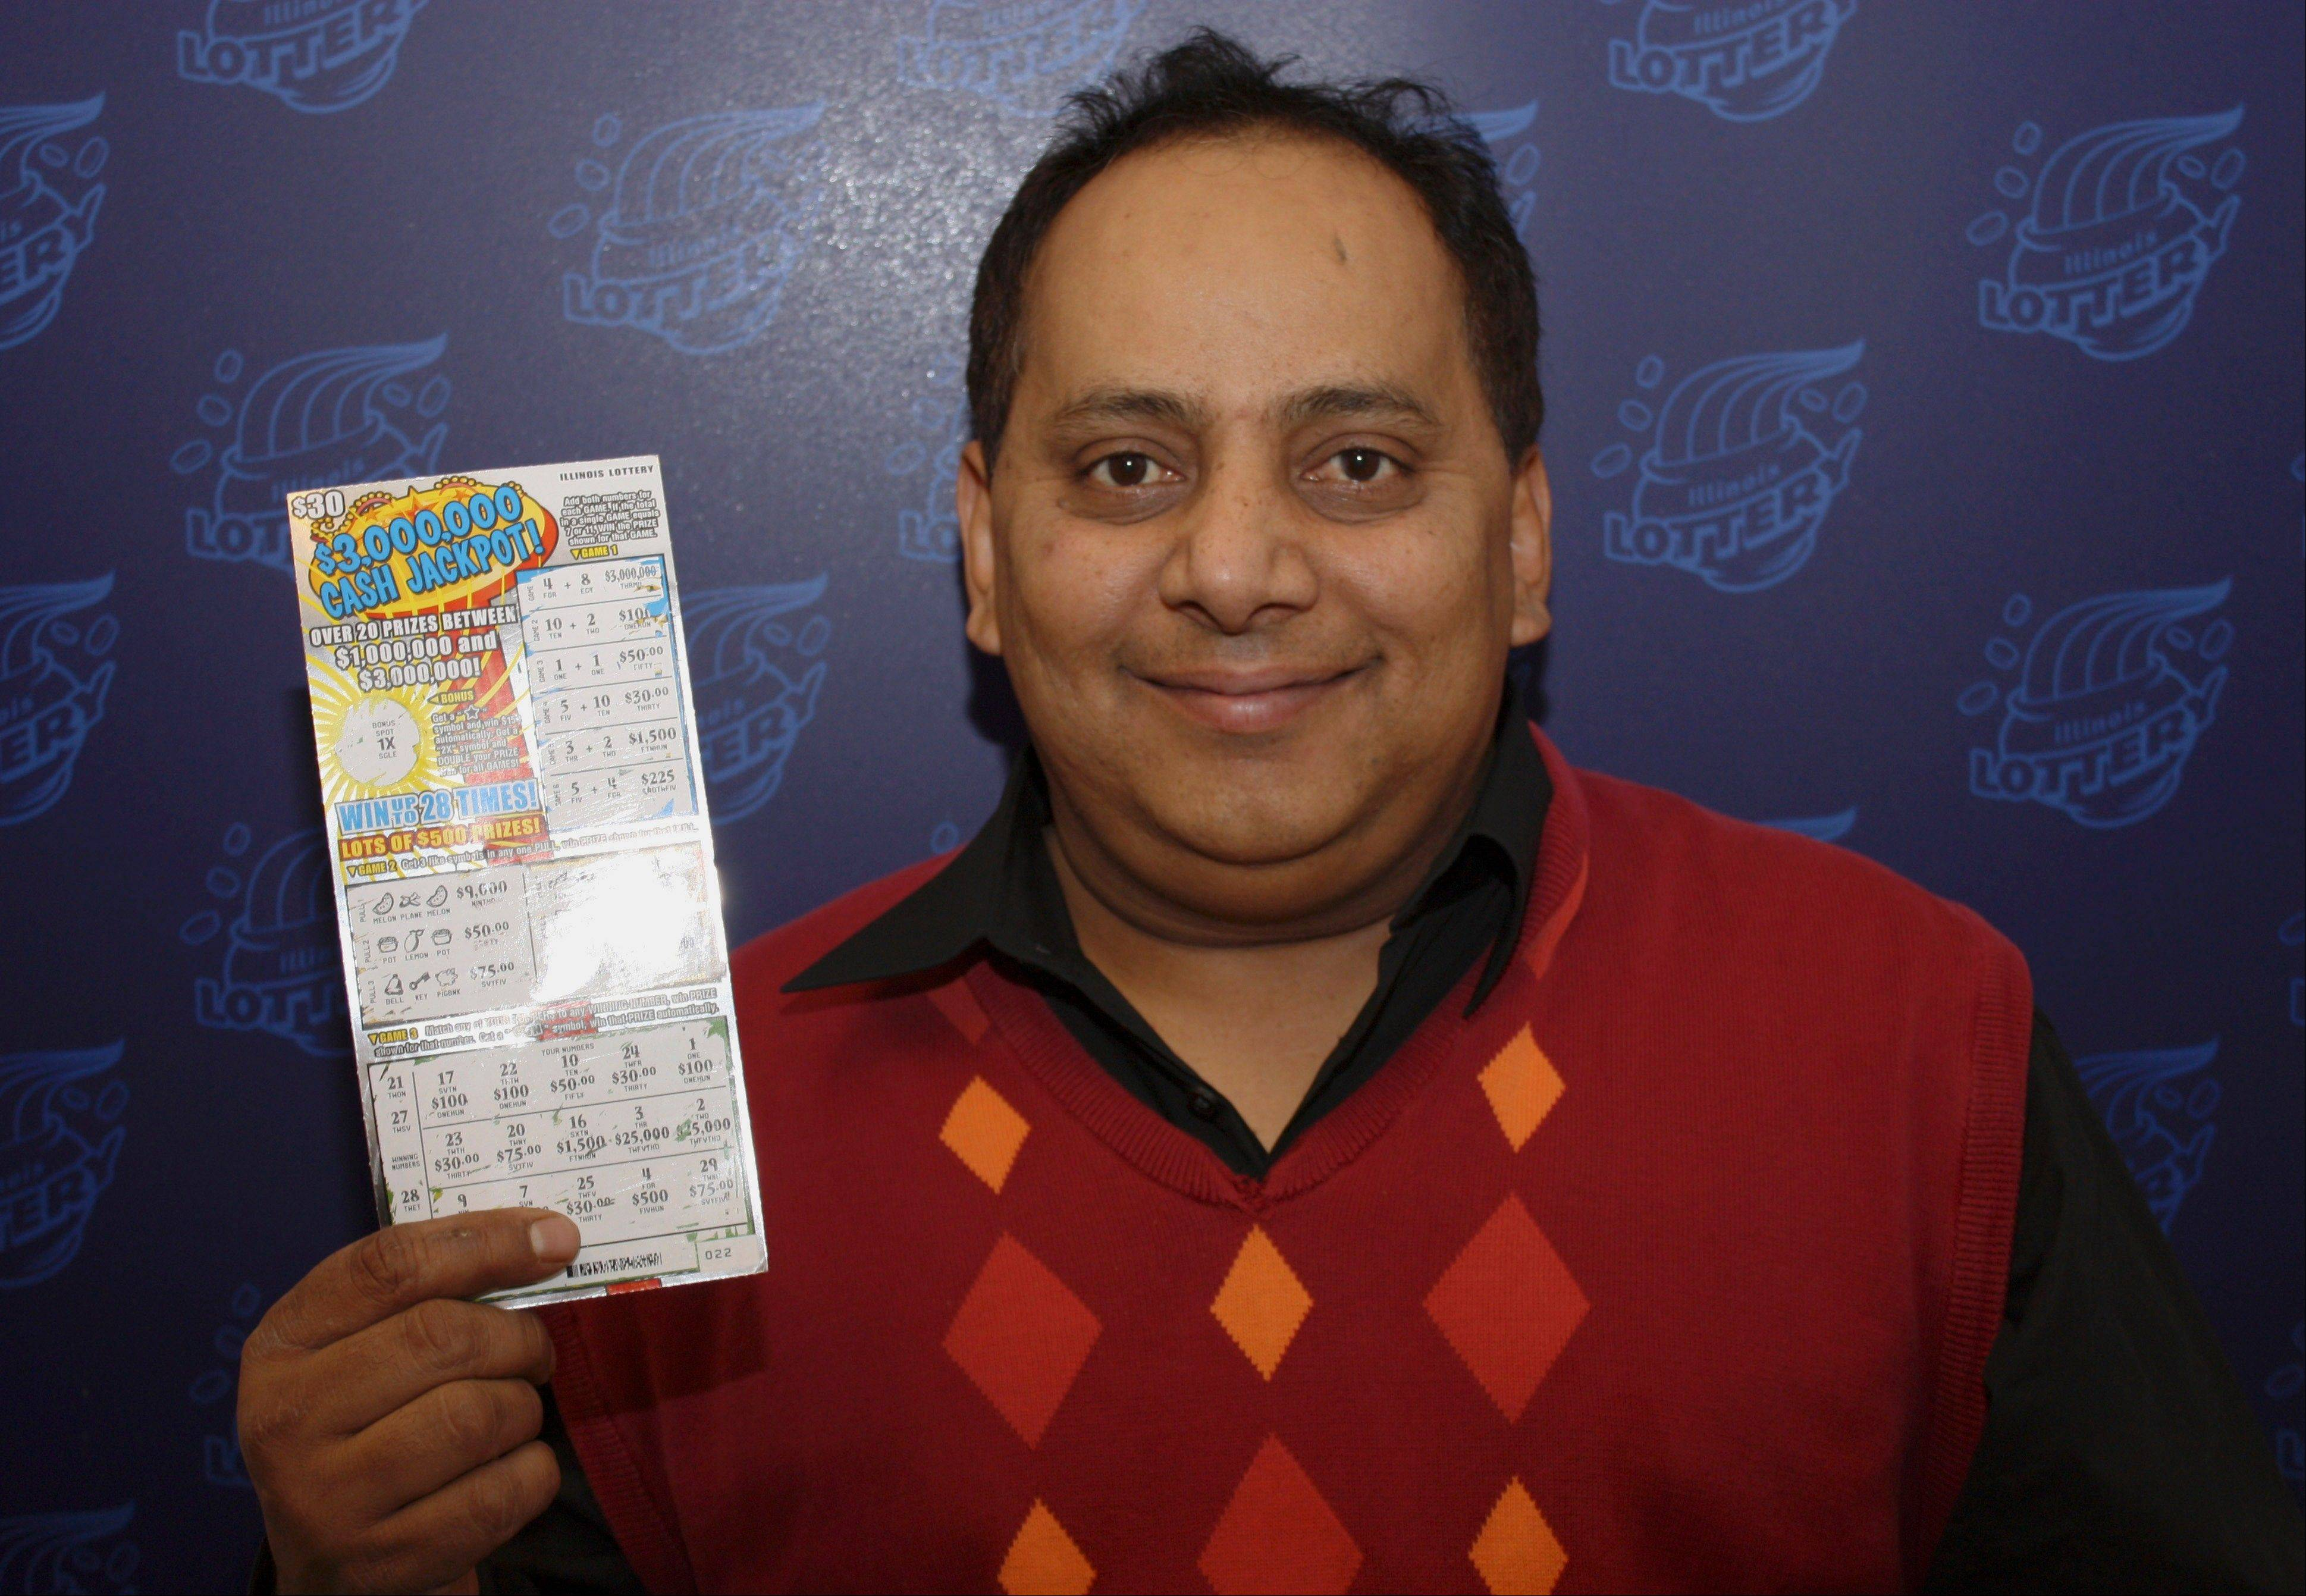 Urooj Khan, 46, died shortly before he was to collect his lottery winnings.